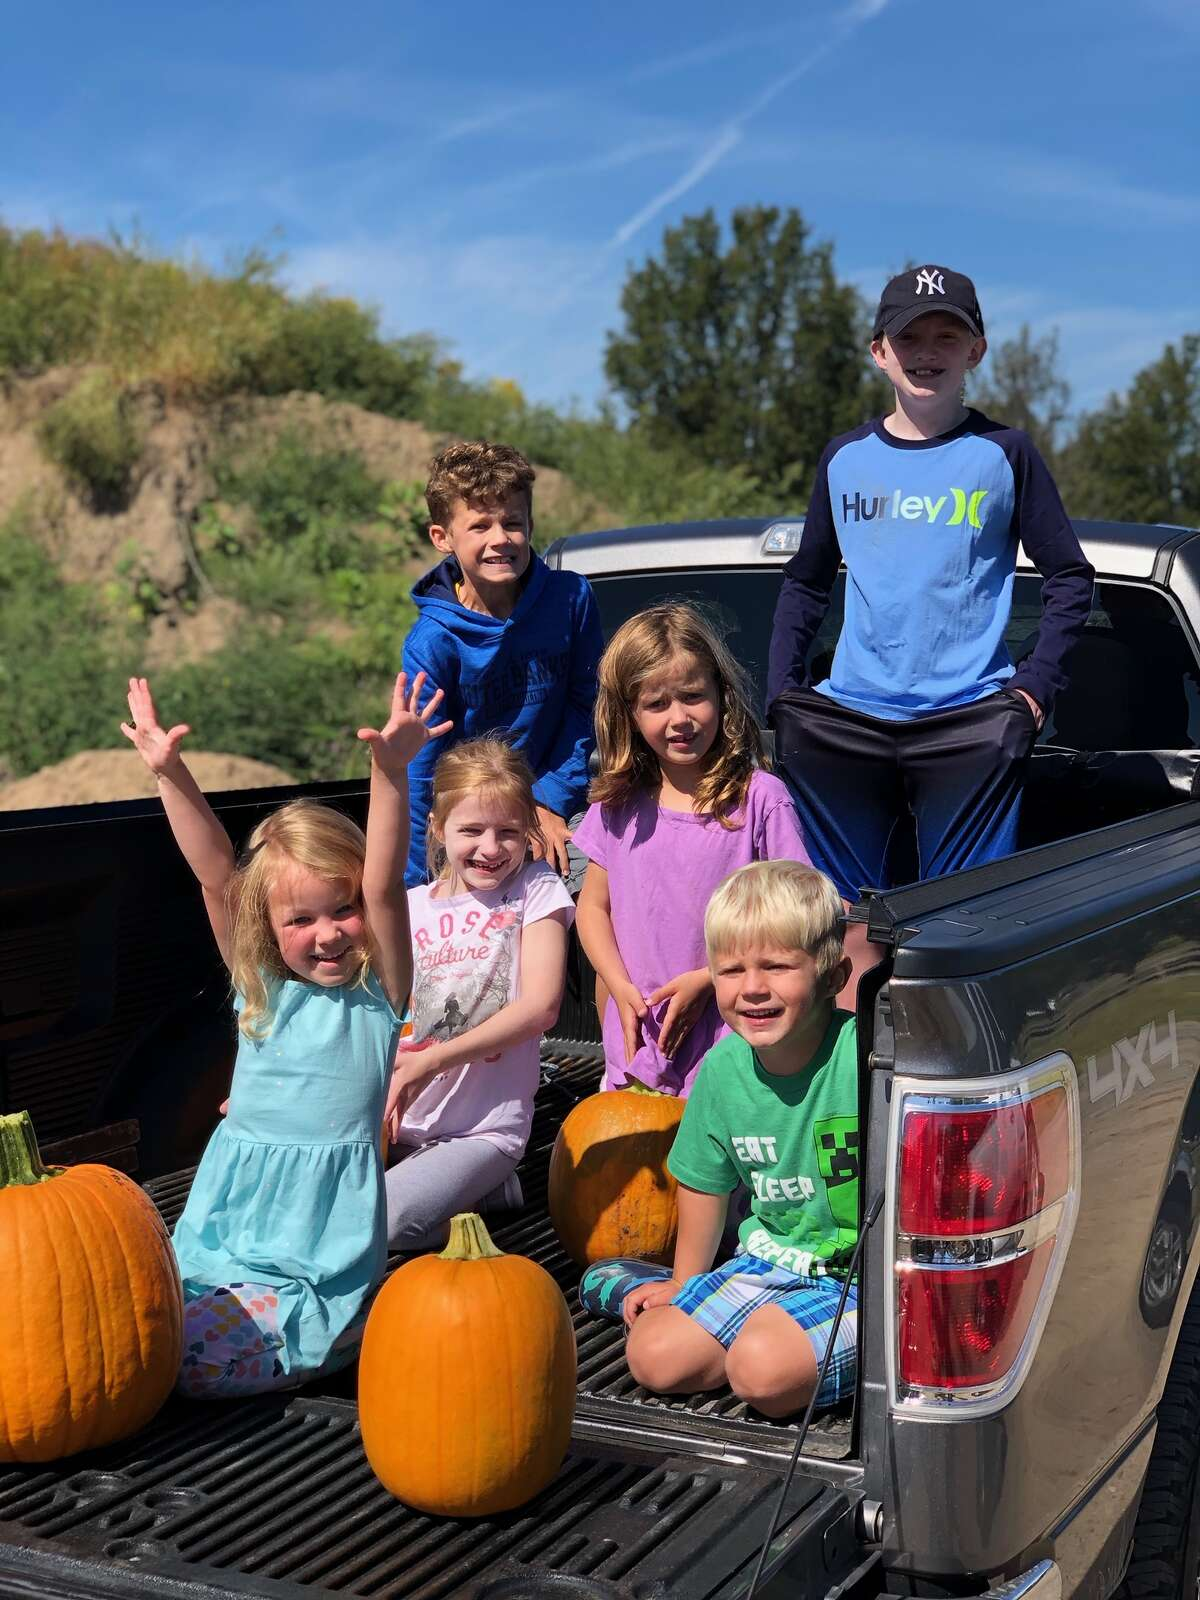 At Constantines Farm in Colonie, cousins Griffin, Ryan, MaryKate,Gracie, Annabel and Bennett having a nice fall day picking pumpkins. (photo provided by Steve Layne)